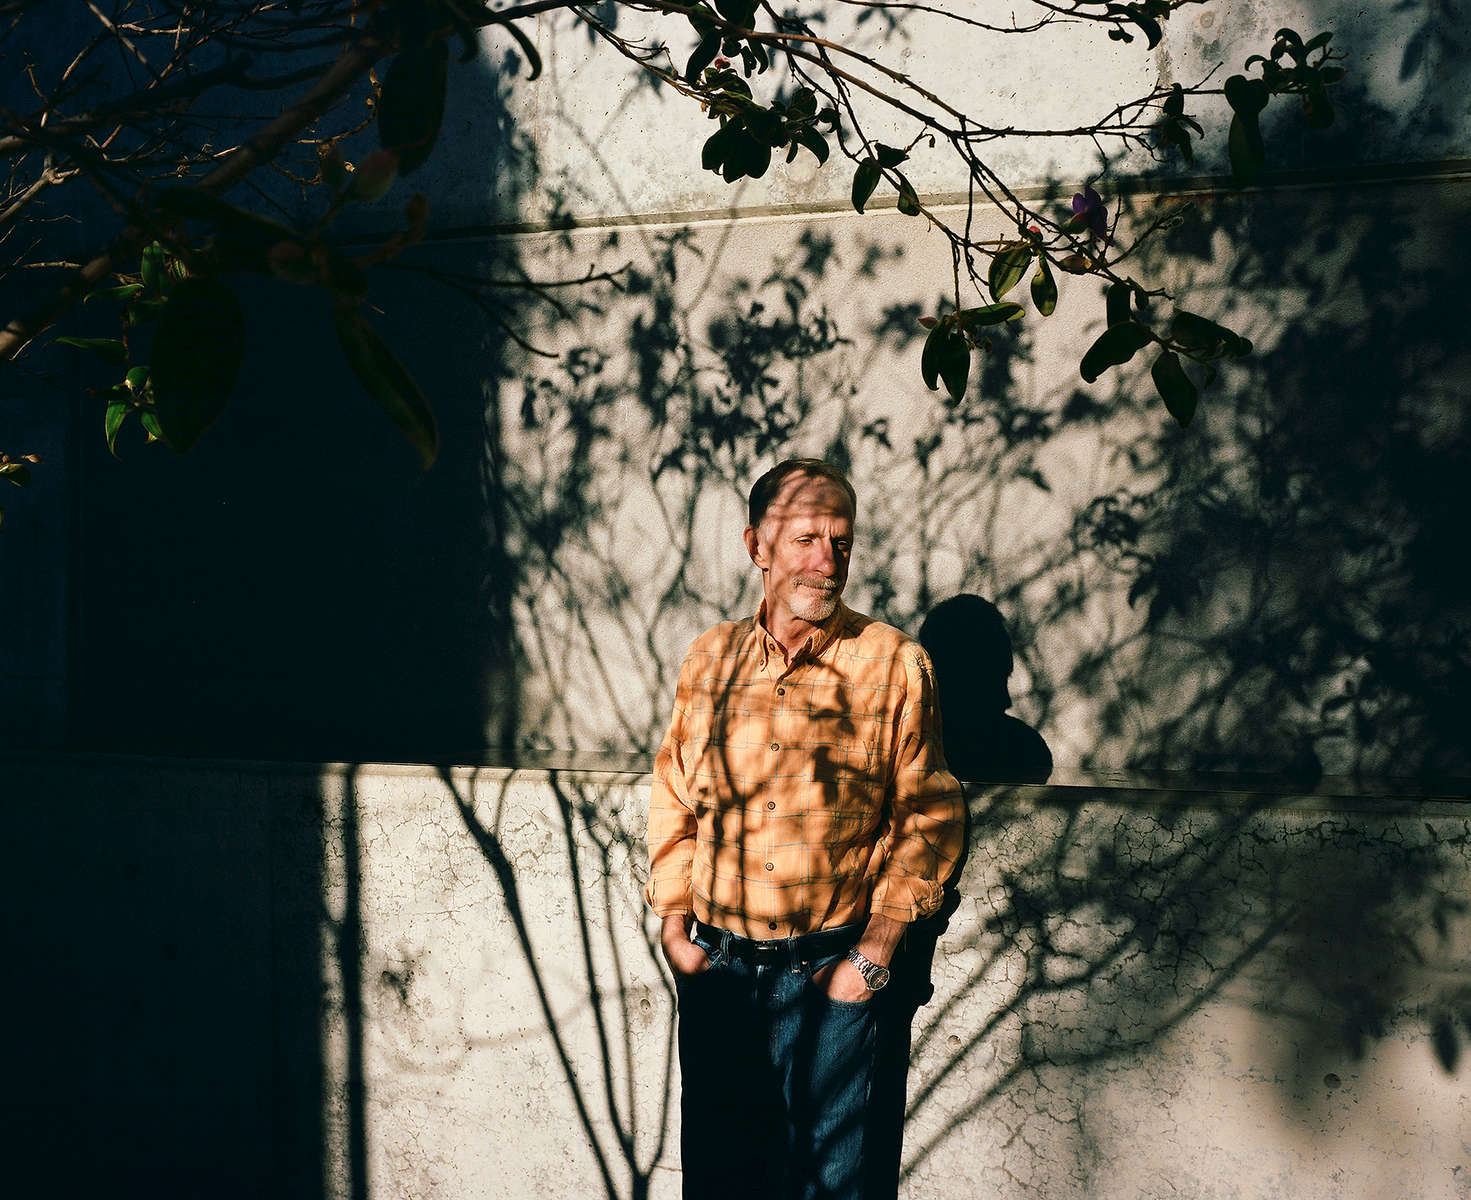 Kevin VandenBergh stands outside his new apartment in San Francisco, Calif. on November 23, 2016. VandenBergh was one of the men featured in the Chronicle's first feature film called Last Men Standing about long-term HIV survivors.